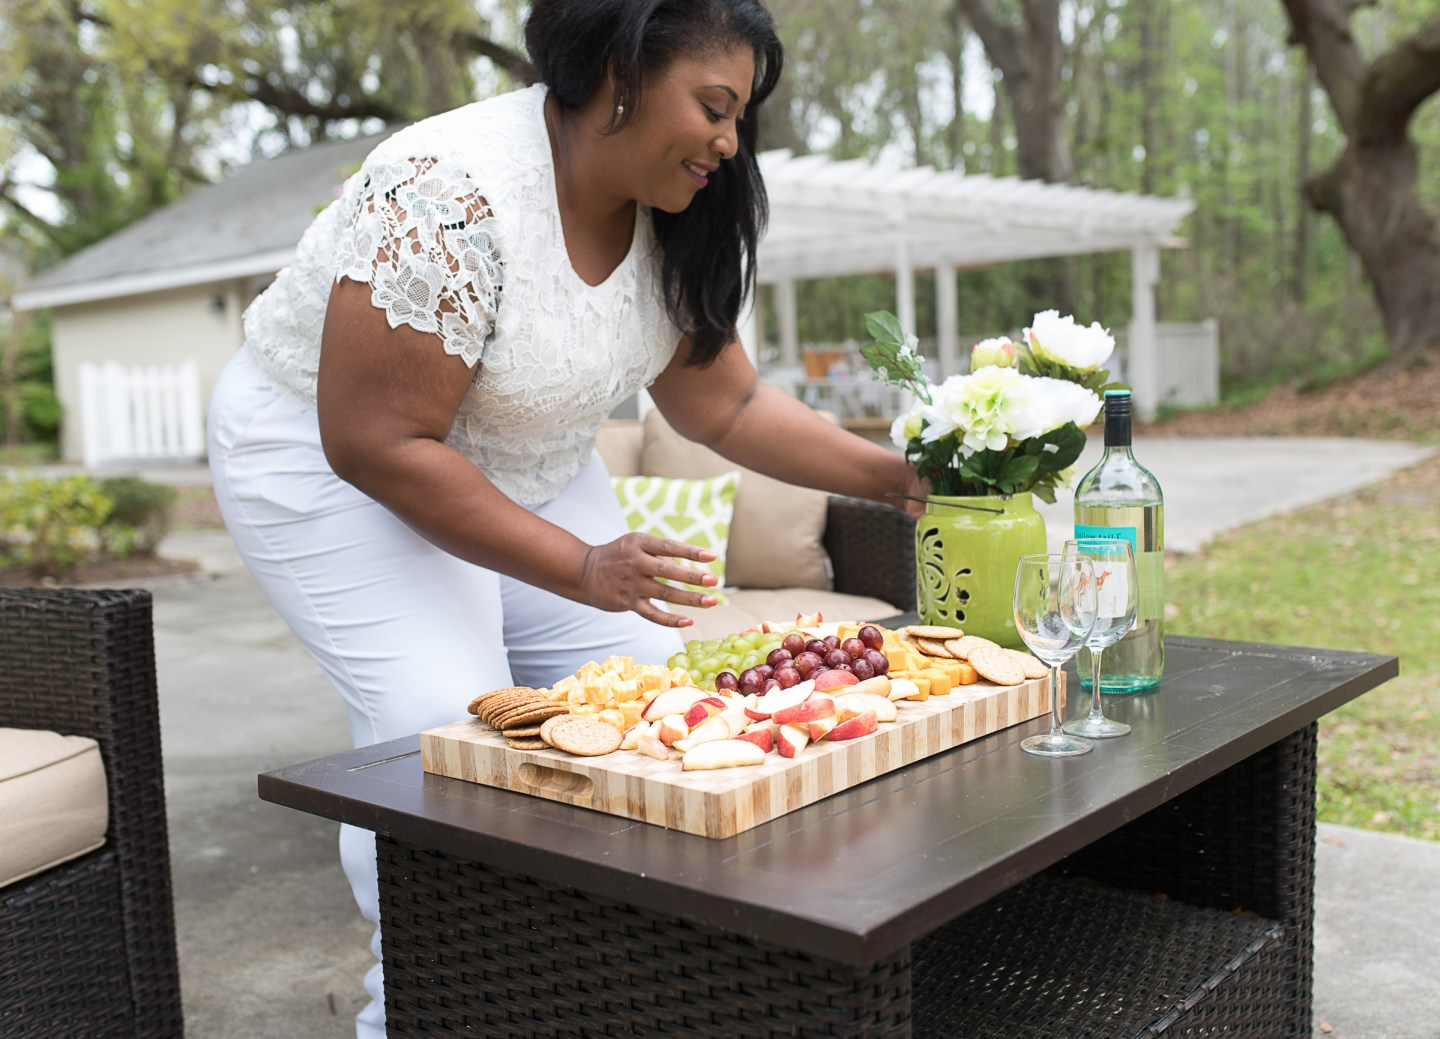 The-Encore-8-of-88-1440x1039 How to Host a Summer Dinner Party - The Encore Edition